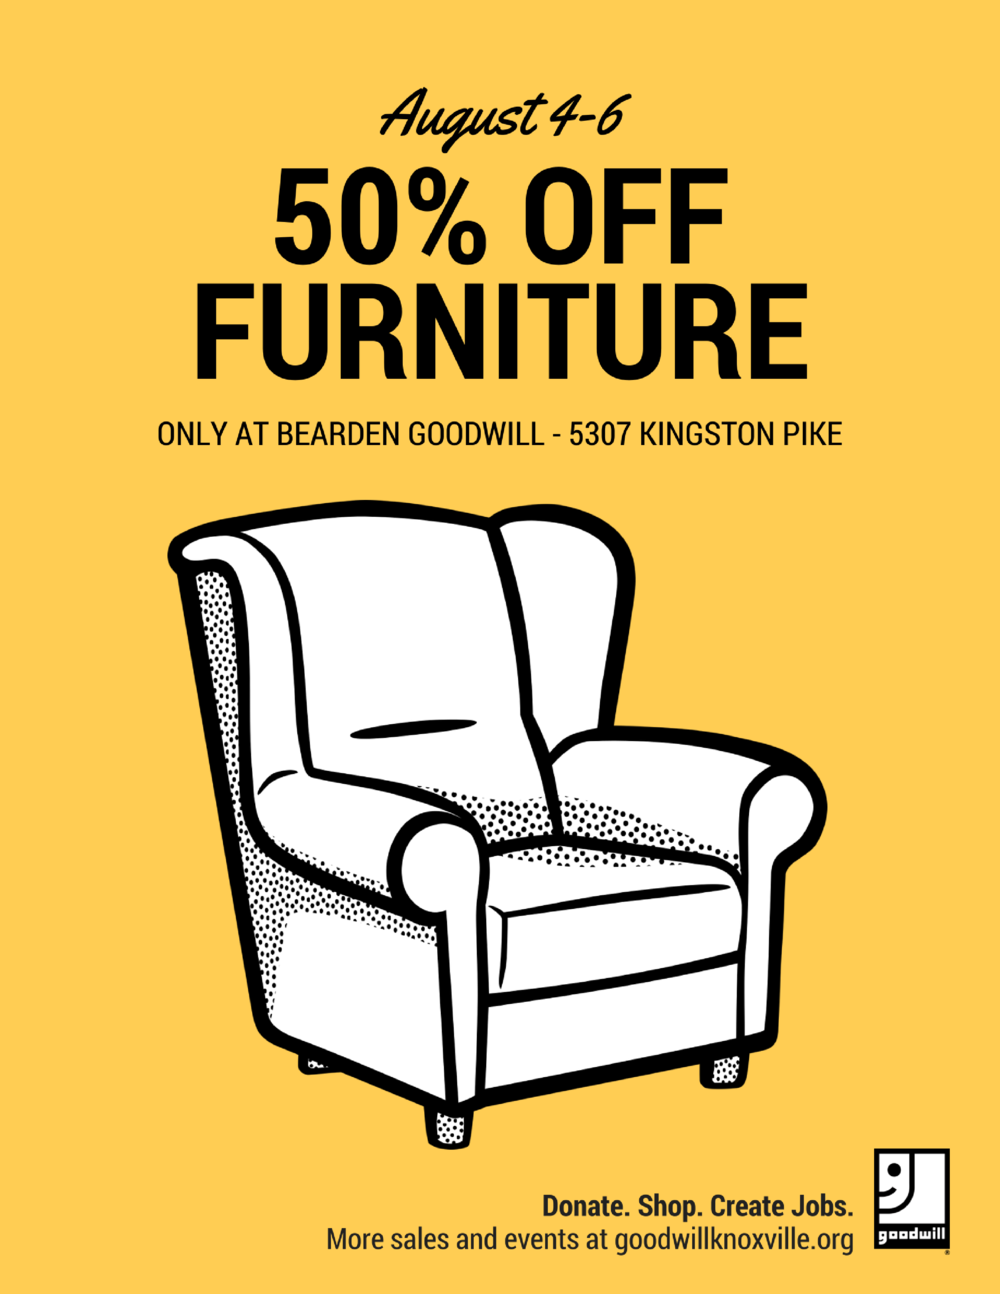 50% Off Furniture At Bearden